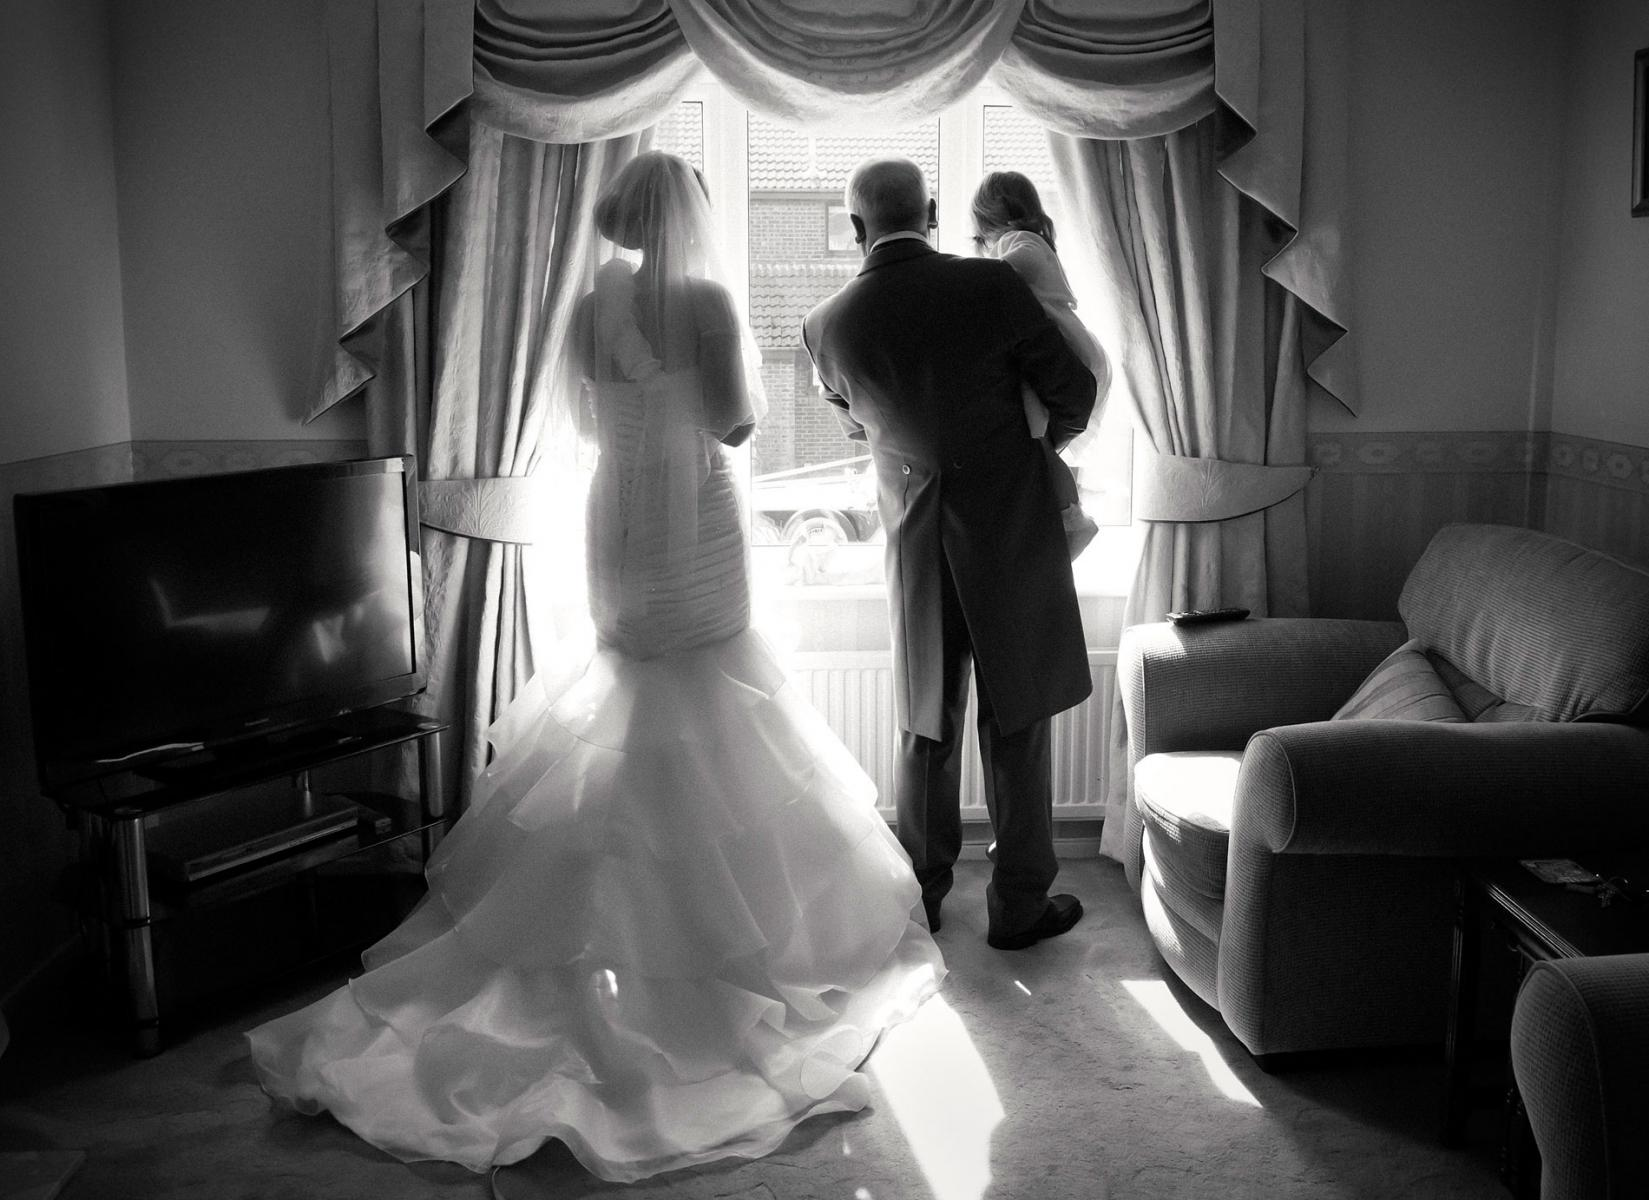 Bride-and-father-waiting-for-wedding-limo-South-Wales-wedding-photography